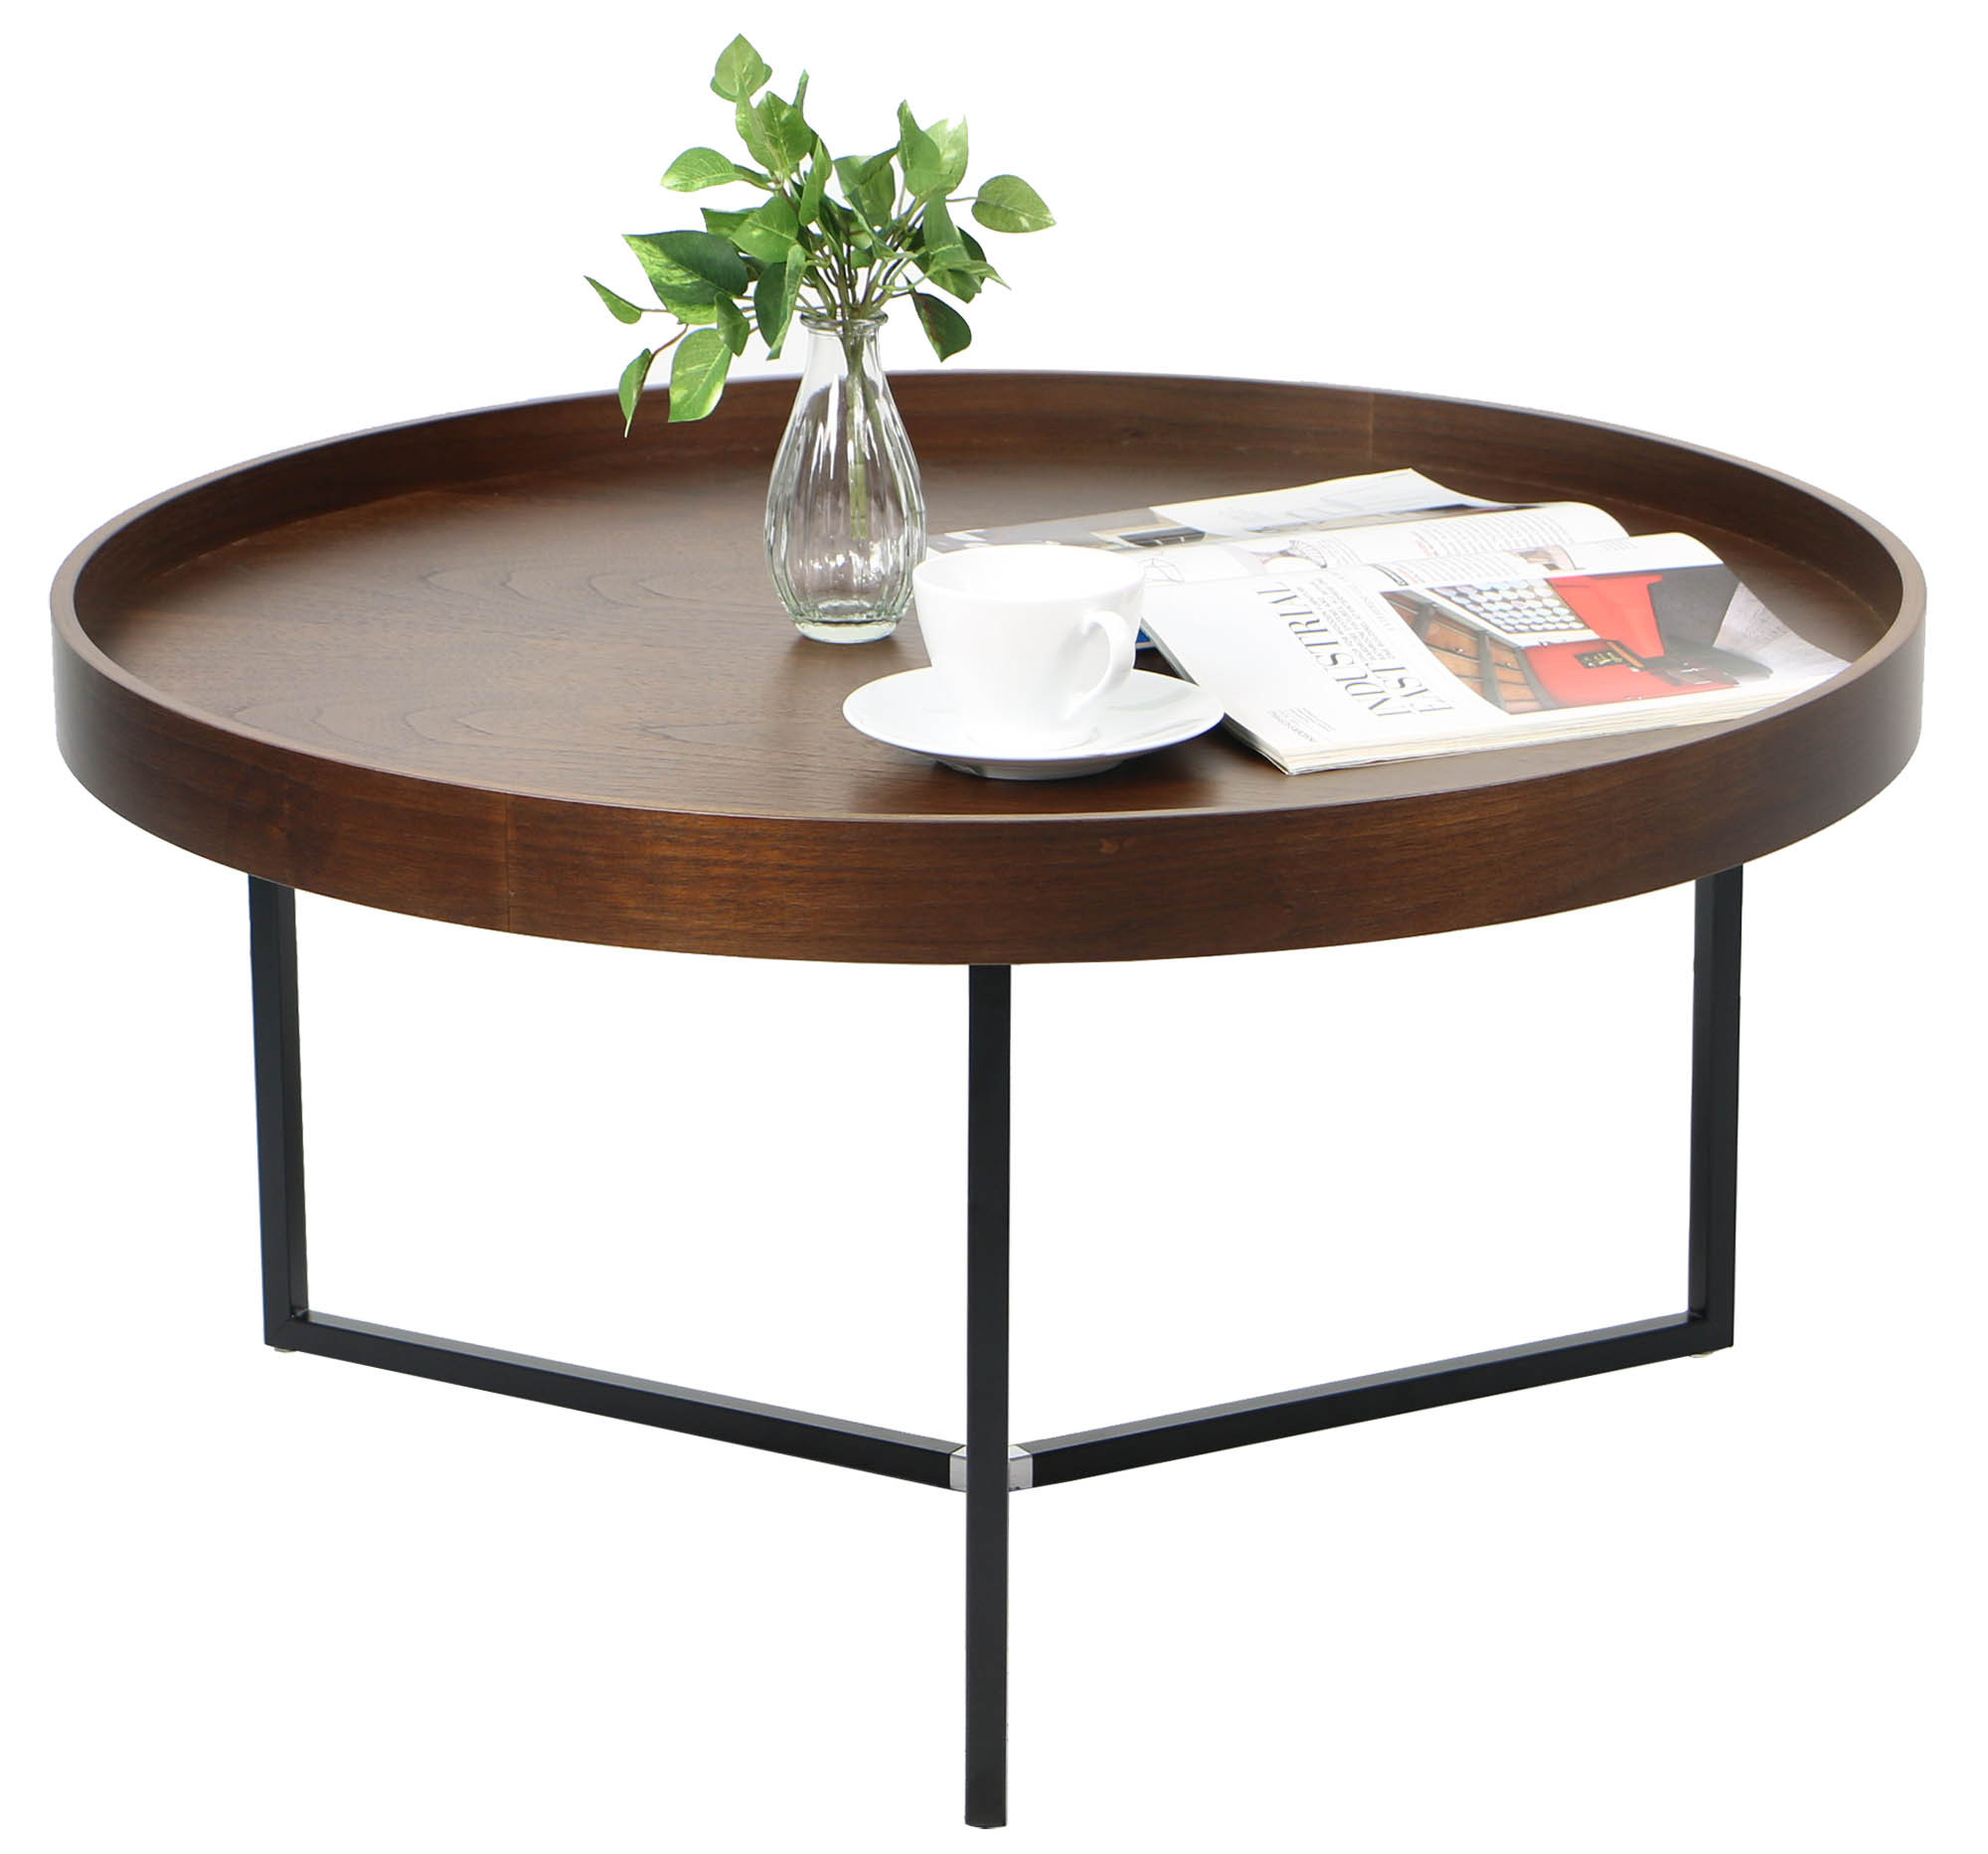 Barrie walnut round tray table coffee tables living room furniture furniture home d cor Decorative trays for coffee table